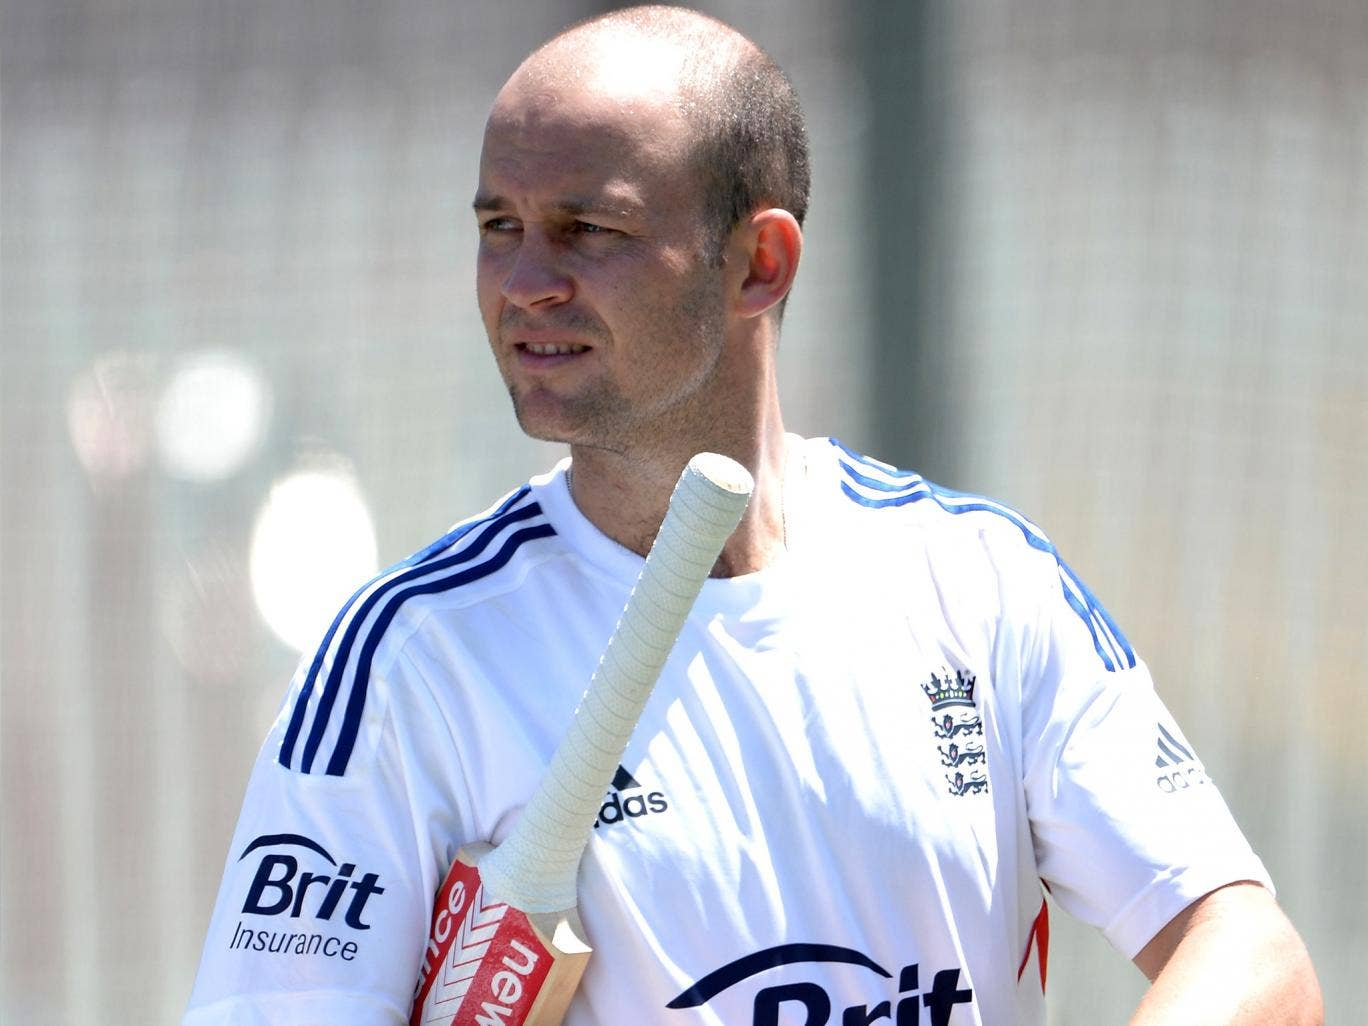 Jonathan Trott hopes to return to county cricket in time for the start of the season